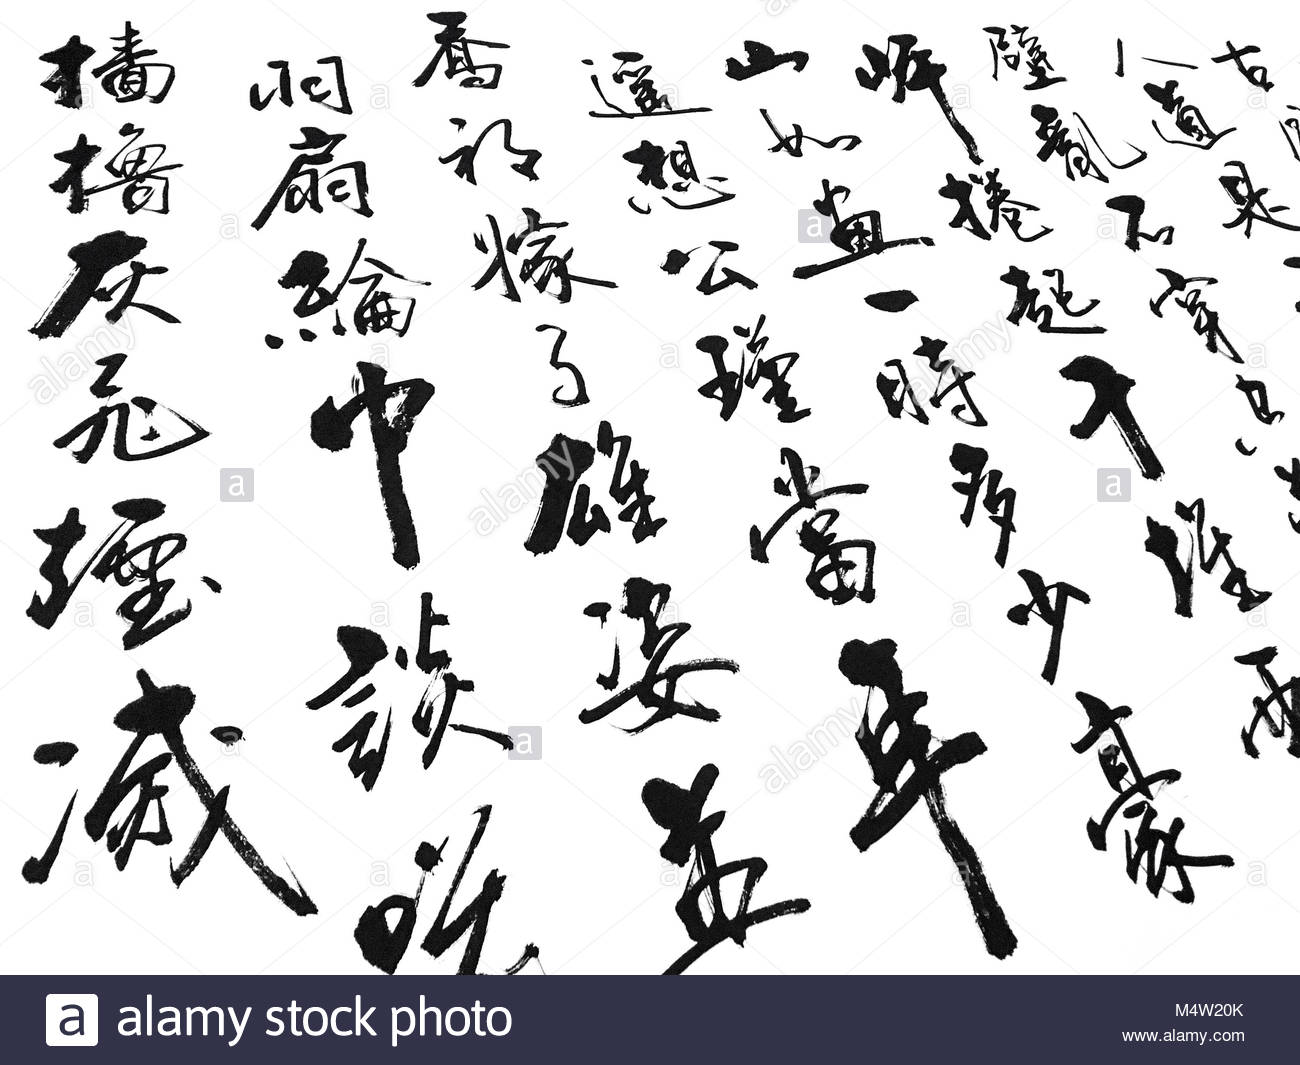 1300x1065 Calligraphy China Black And White Stock Photos Amp Images